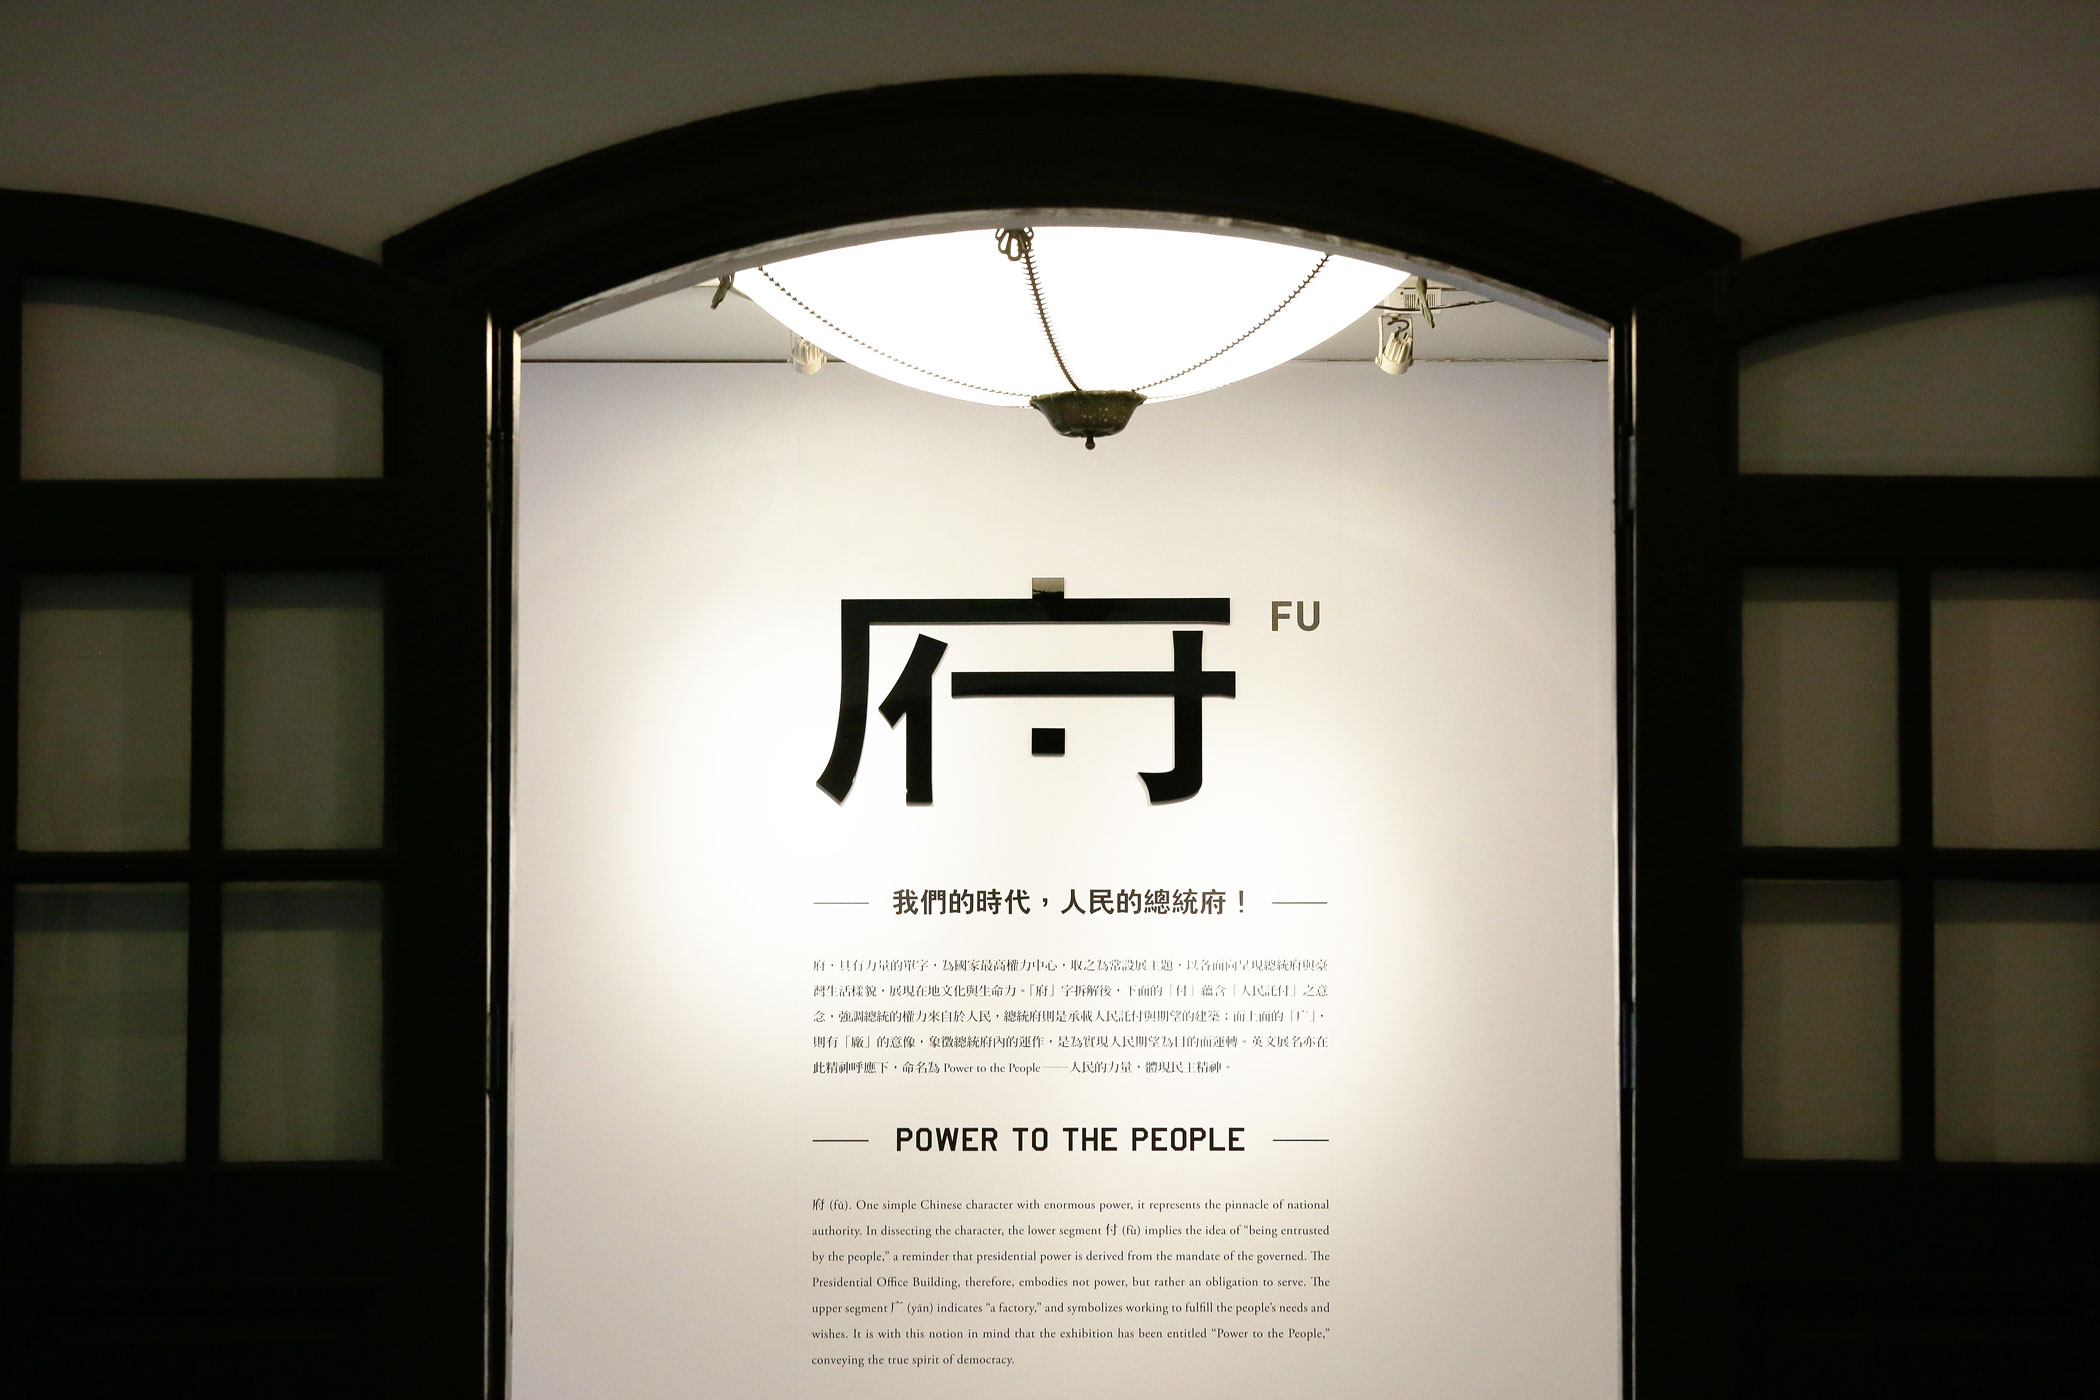 「府-Power To The People」展場